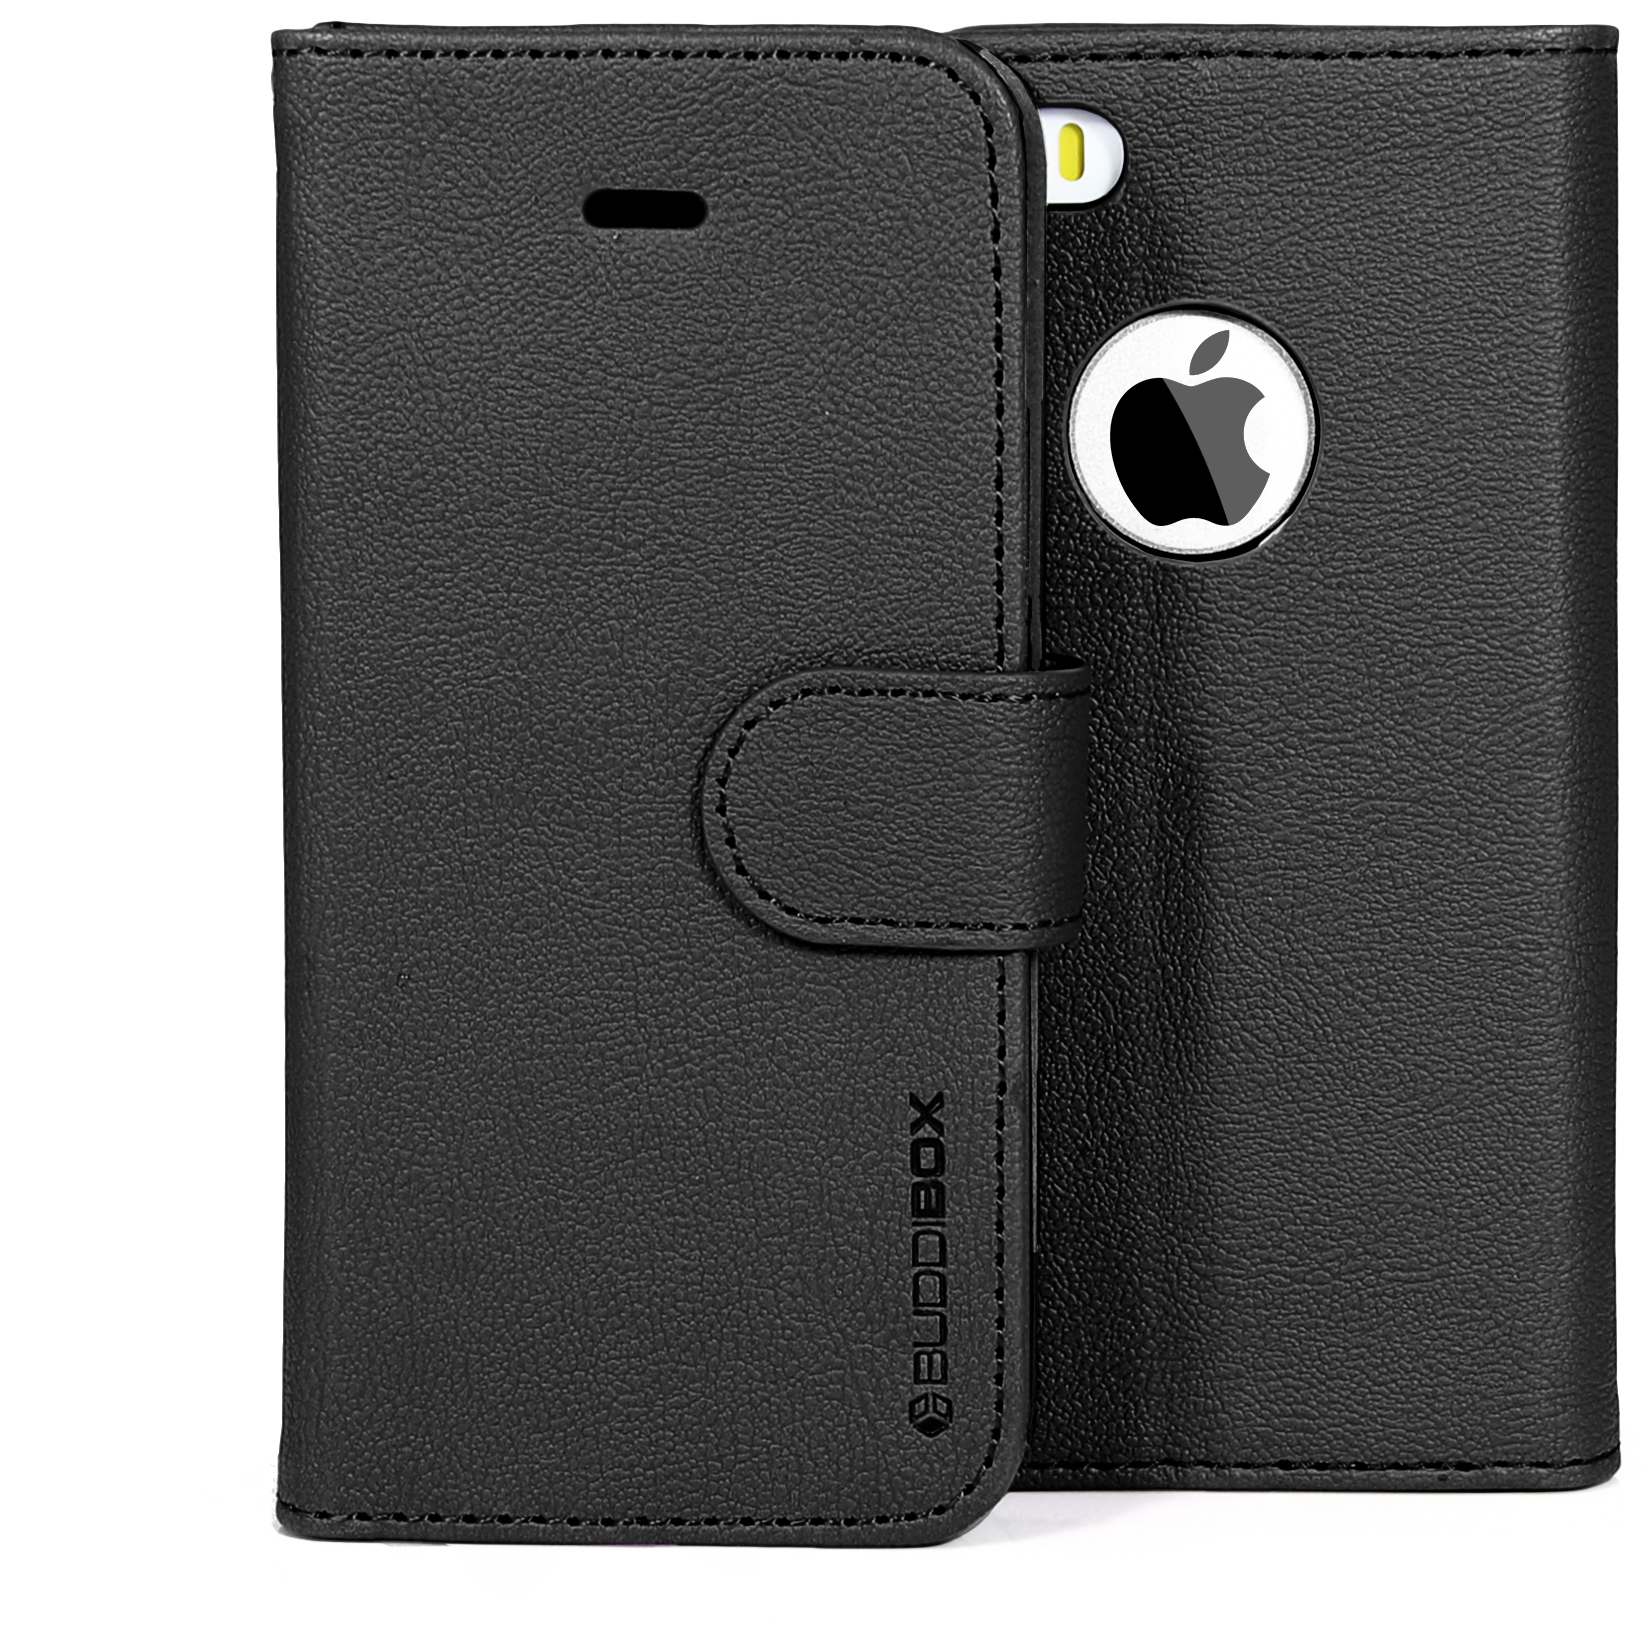 BUDDIBOX Premium Leather Wallet Case for Apple iPhone 5s / 5